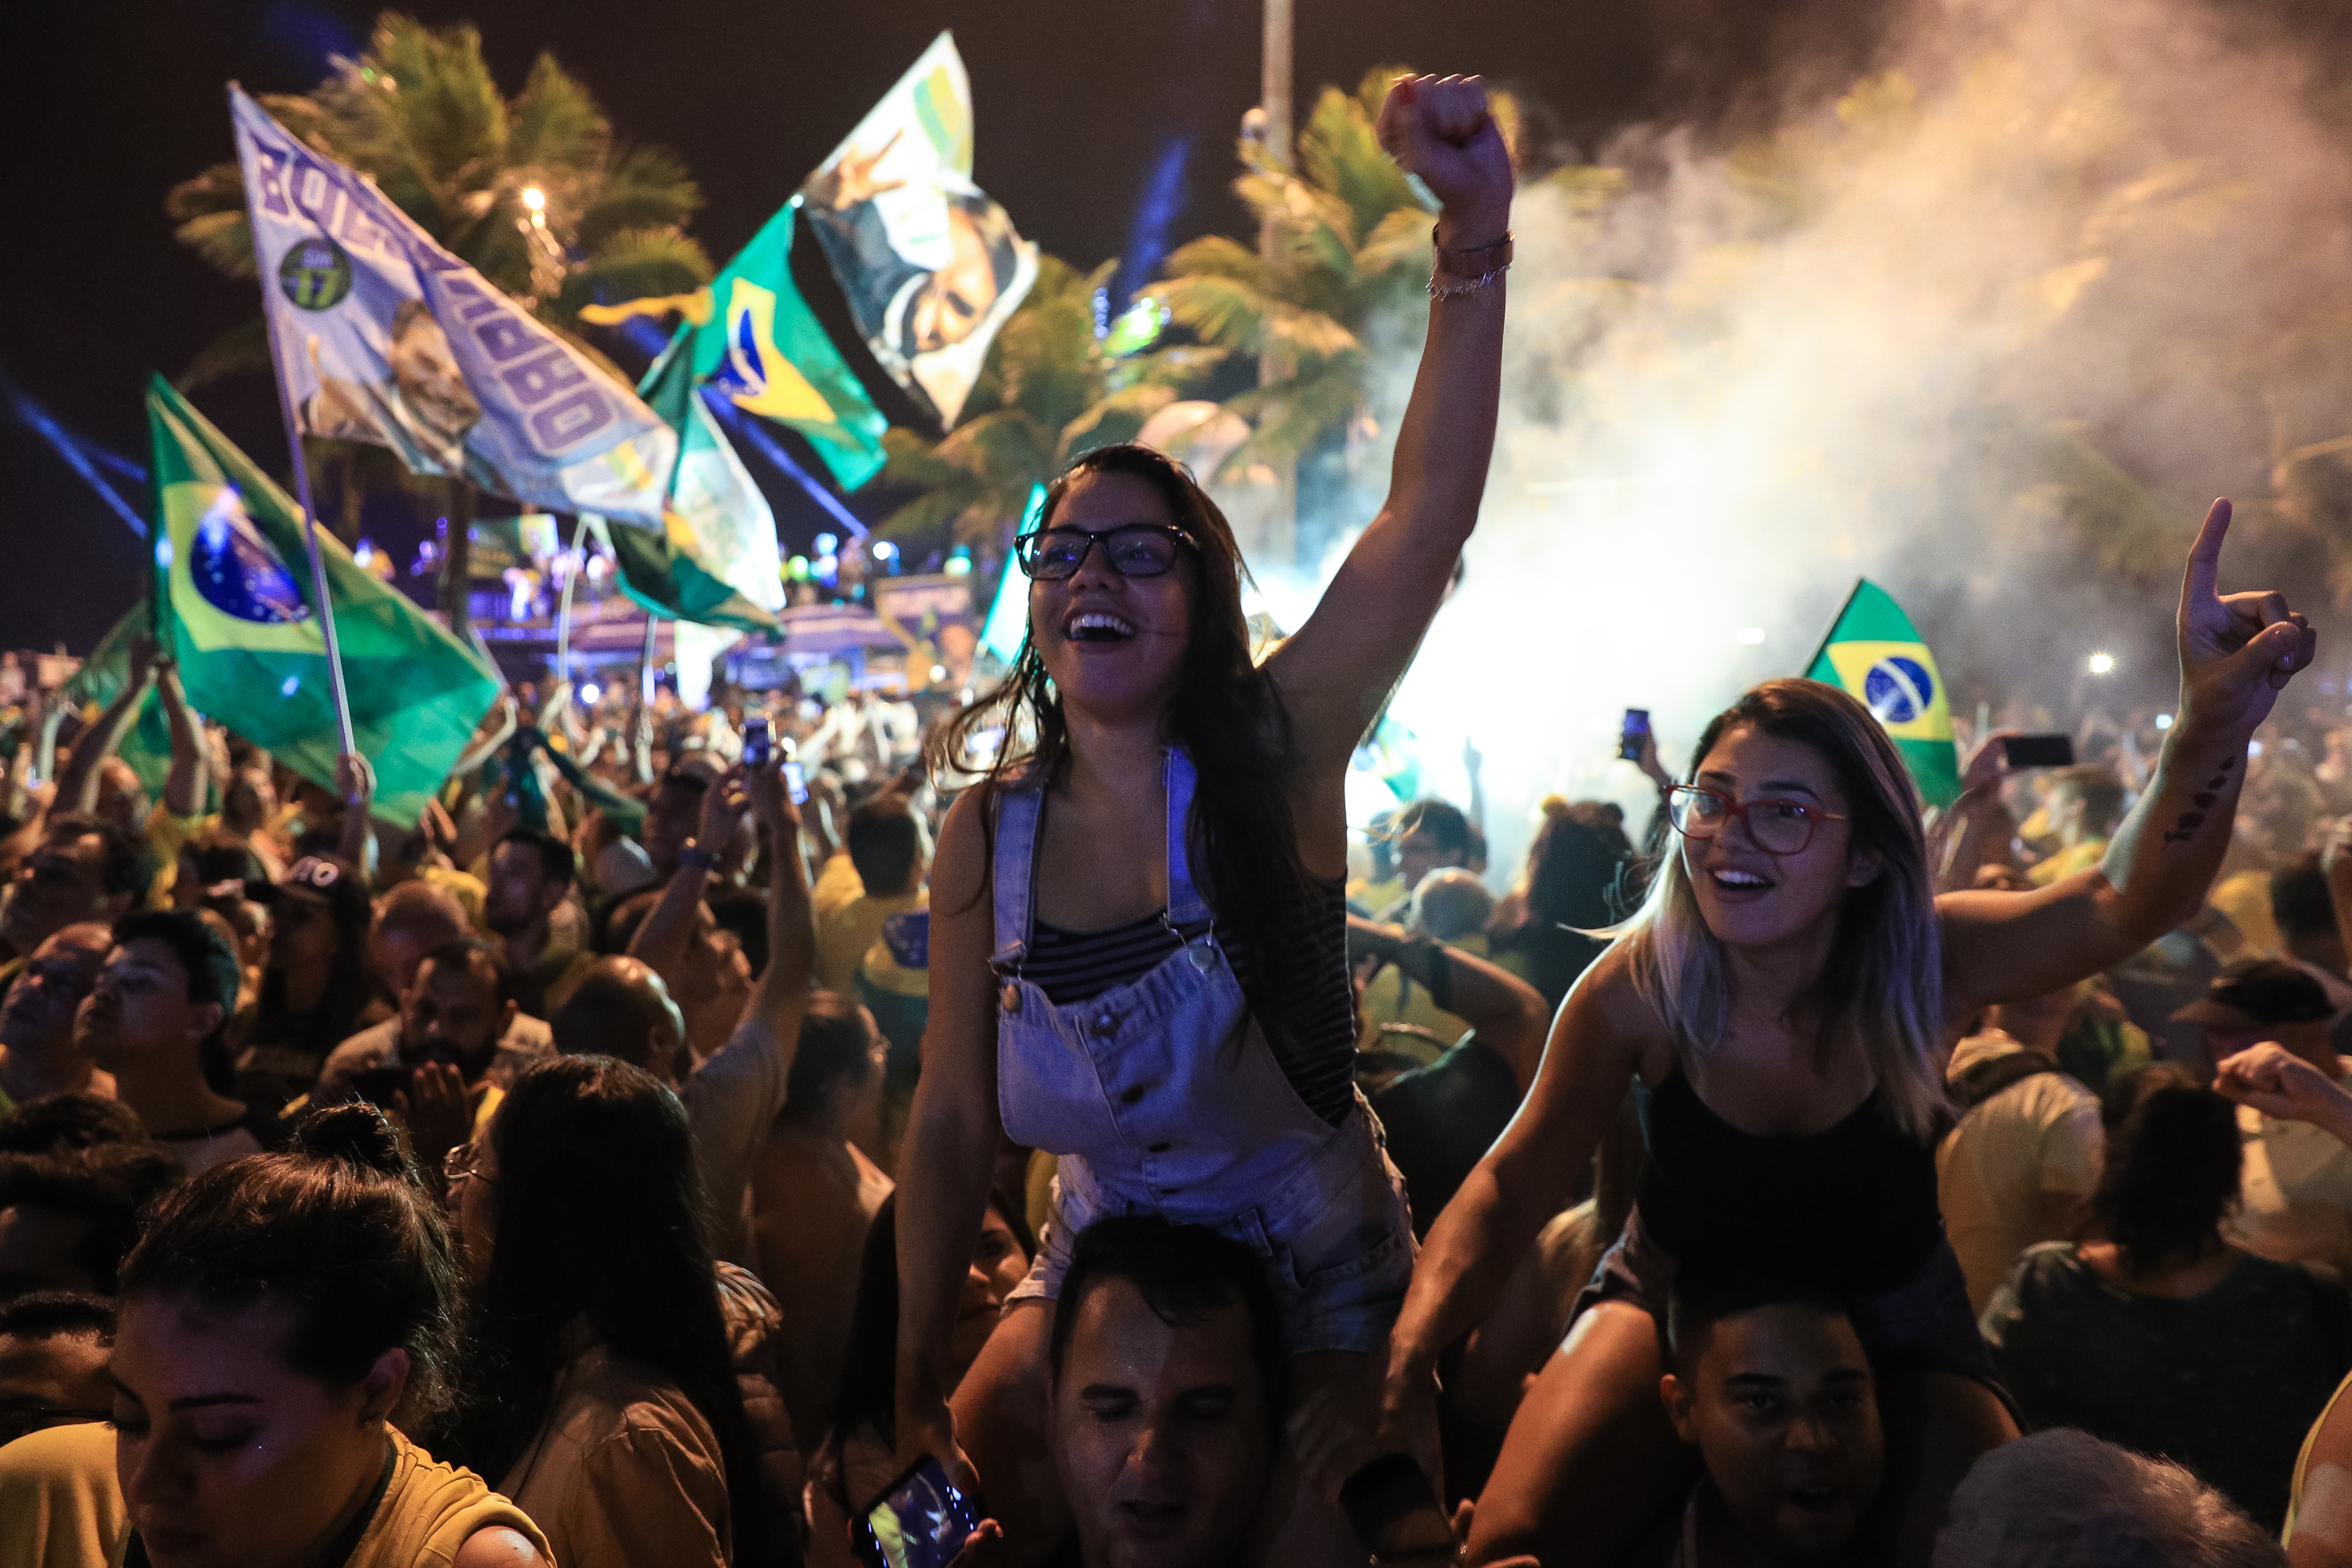 Supporters of far-right presidential candidate Jair Bolsonaro, celebrate in front of his house in Rio de Janeiro, Brazil, after he won Brazil's presidential election, on Oct. 28, 2018 in Rio de Janeiro, Brazil